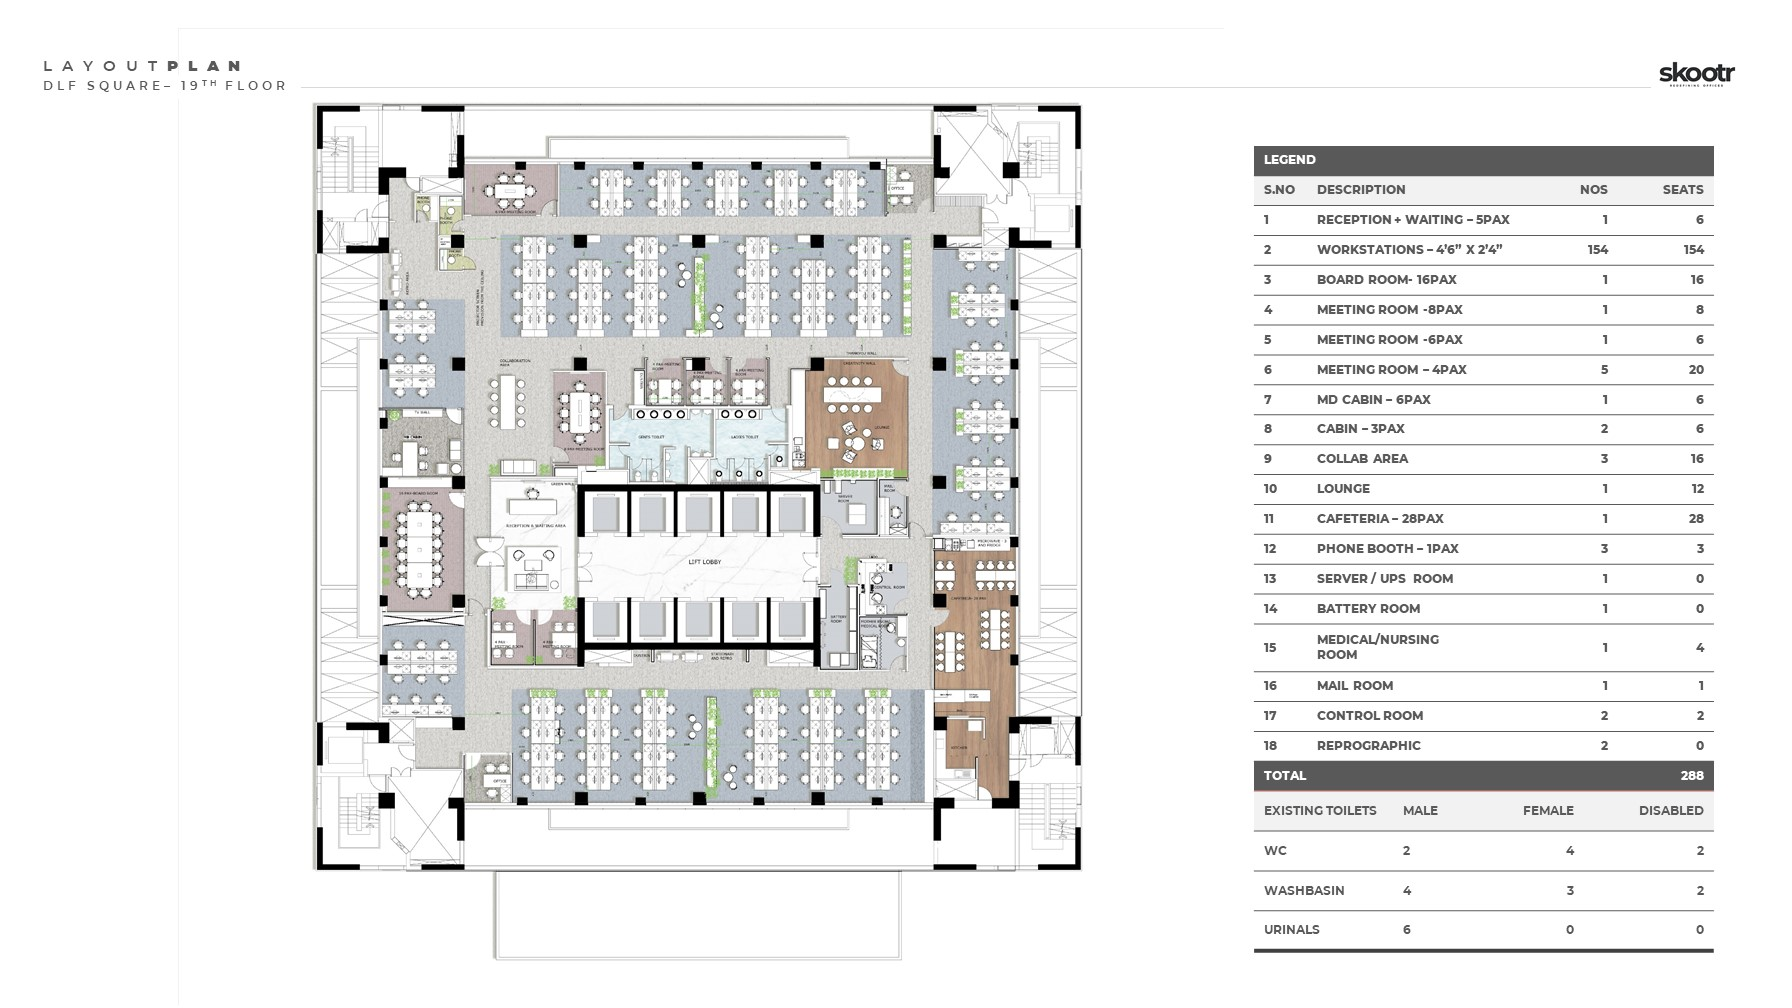 Skootr office DLF Square Layout Plan